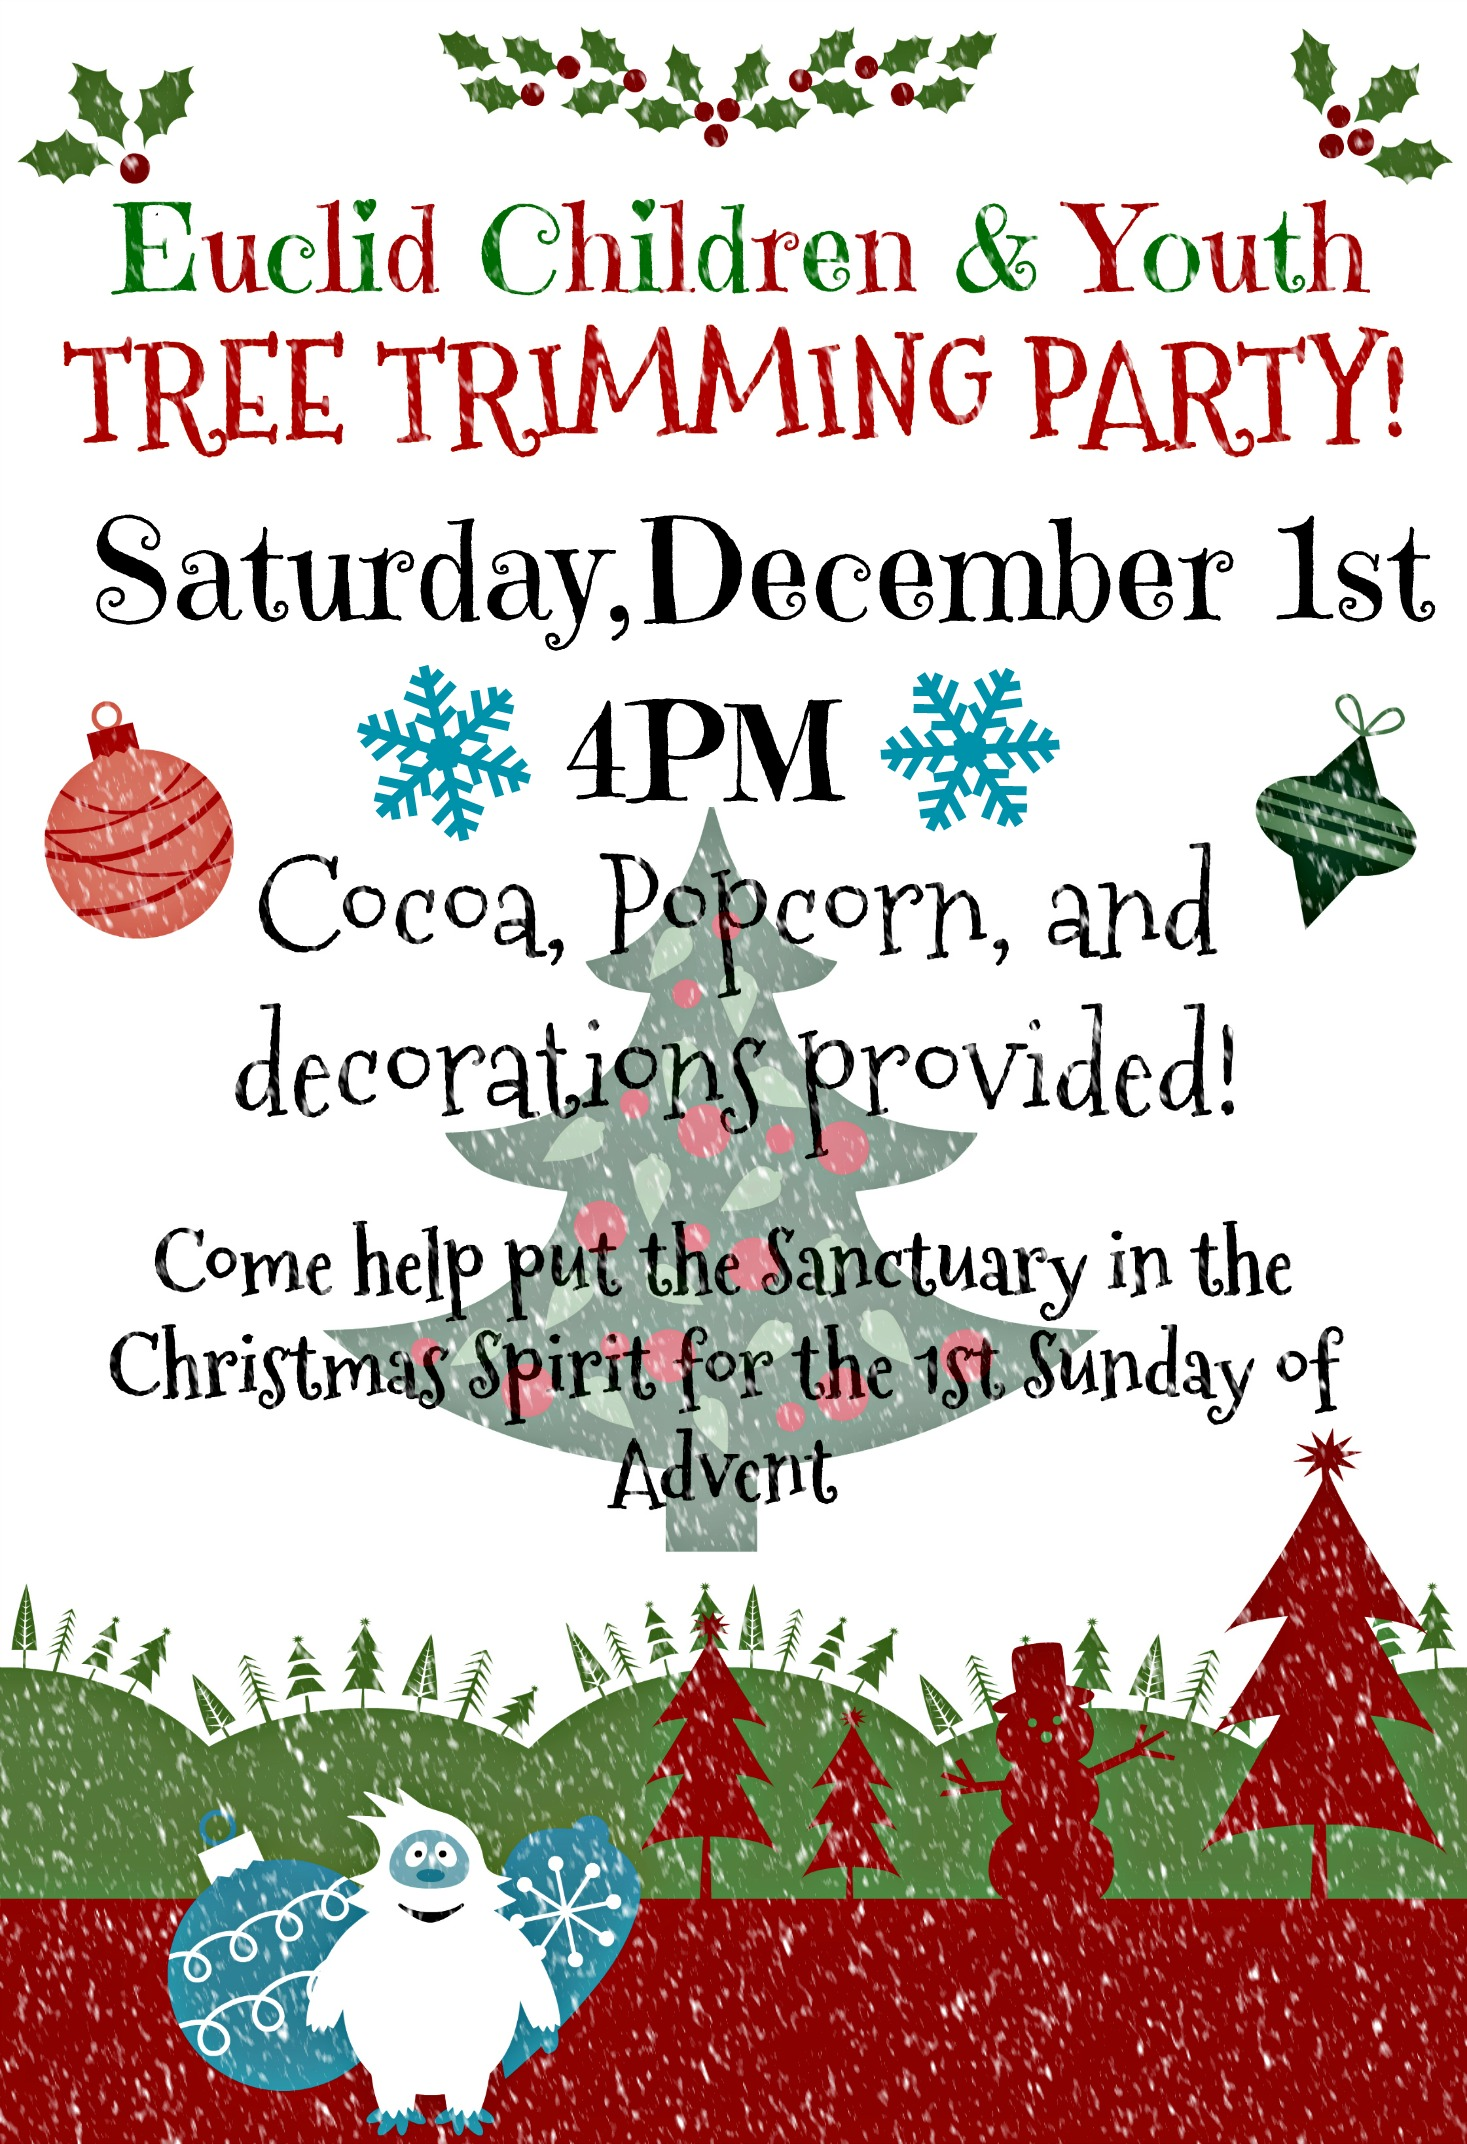 Children & Youth Tree Trimming Party